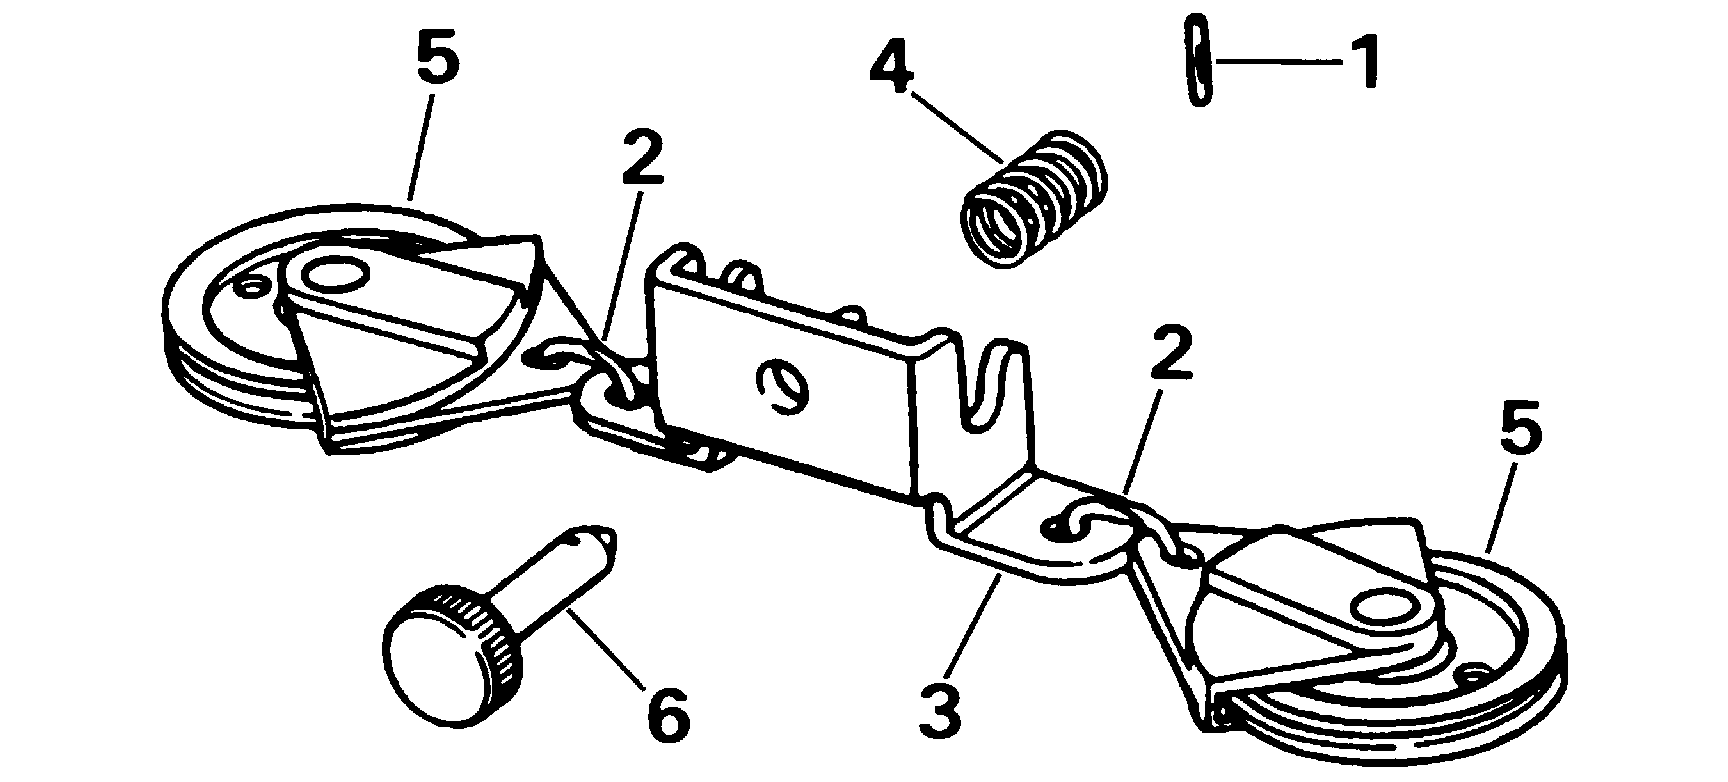 Outboard Motor Steering Cable Diagram